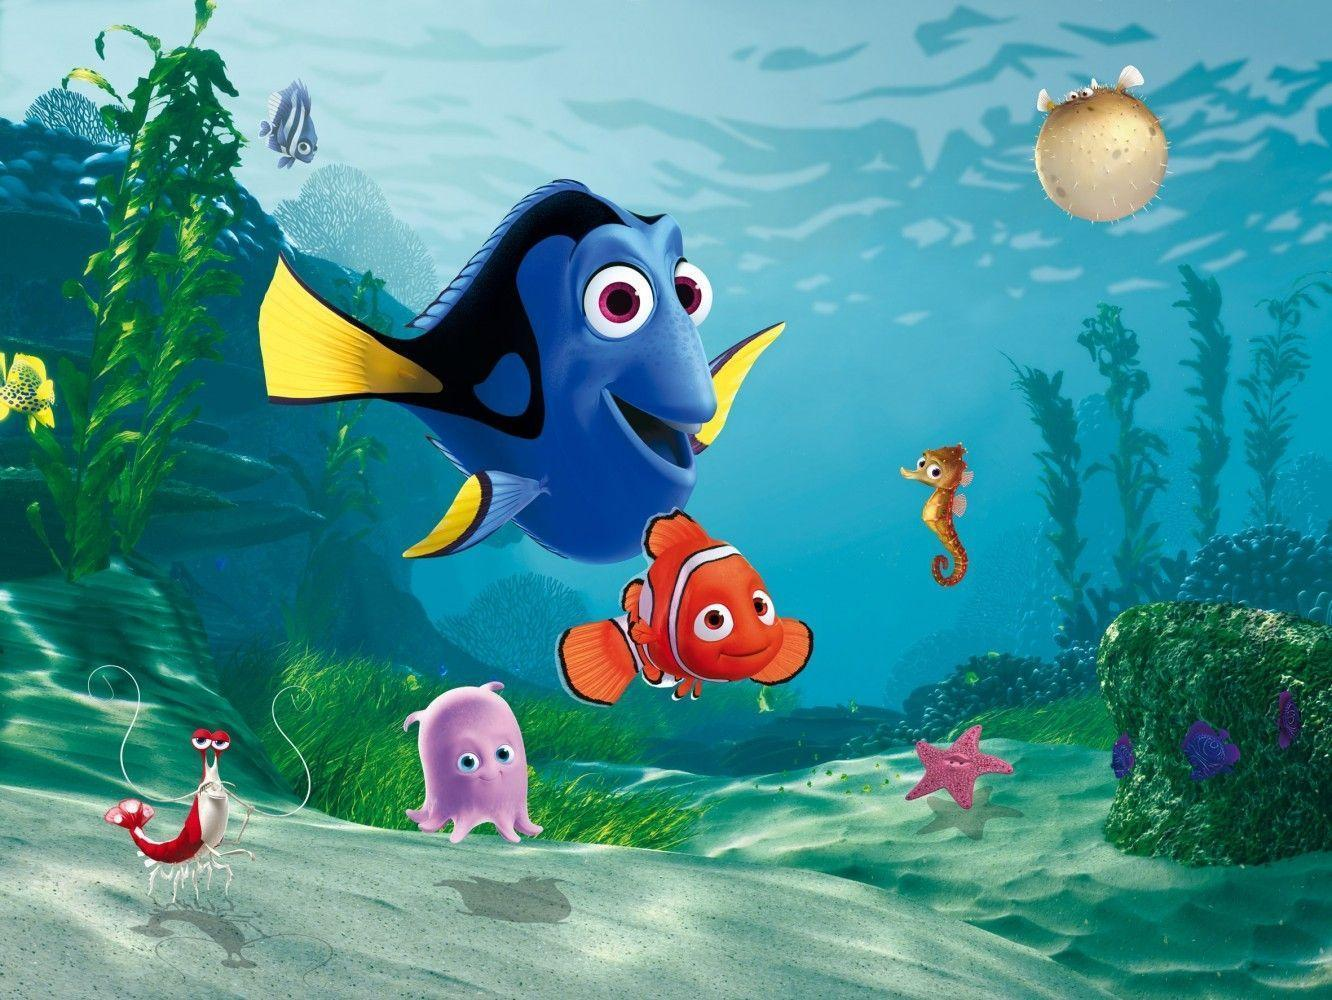 Cute 3D Finding Dory Wallpapers Wallpapers